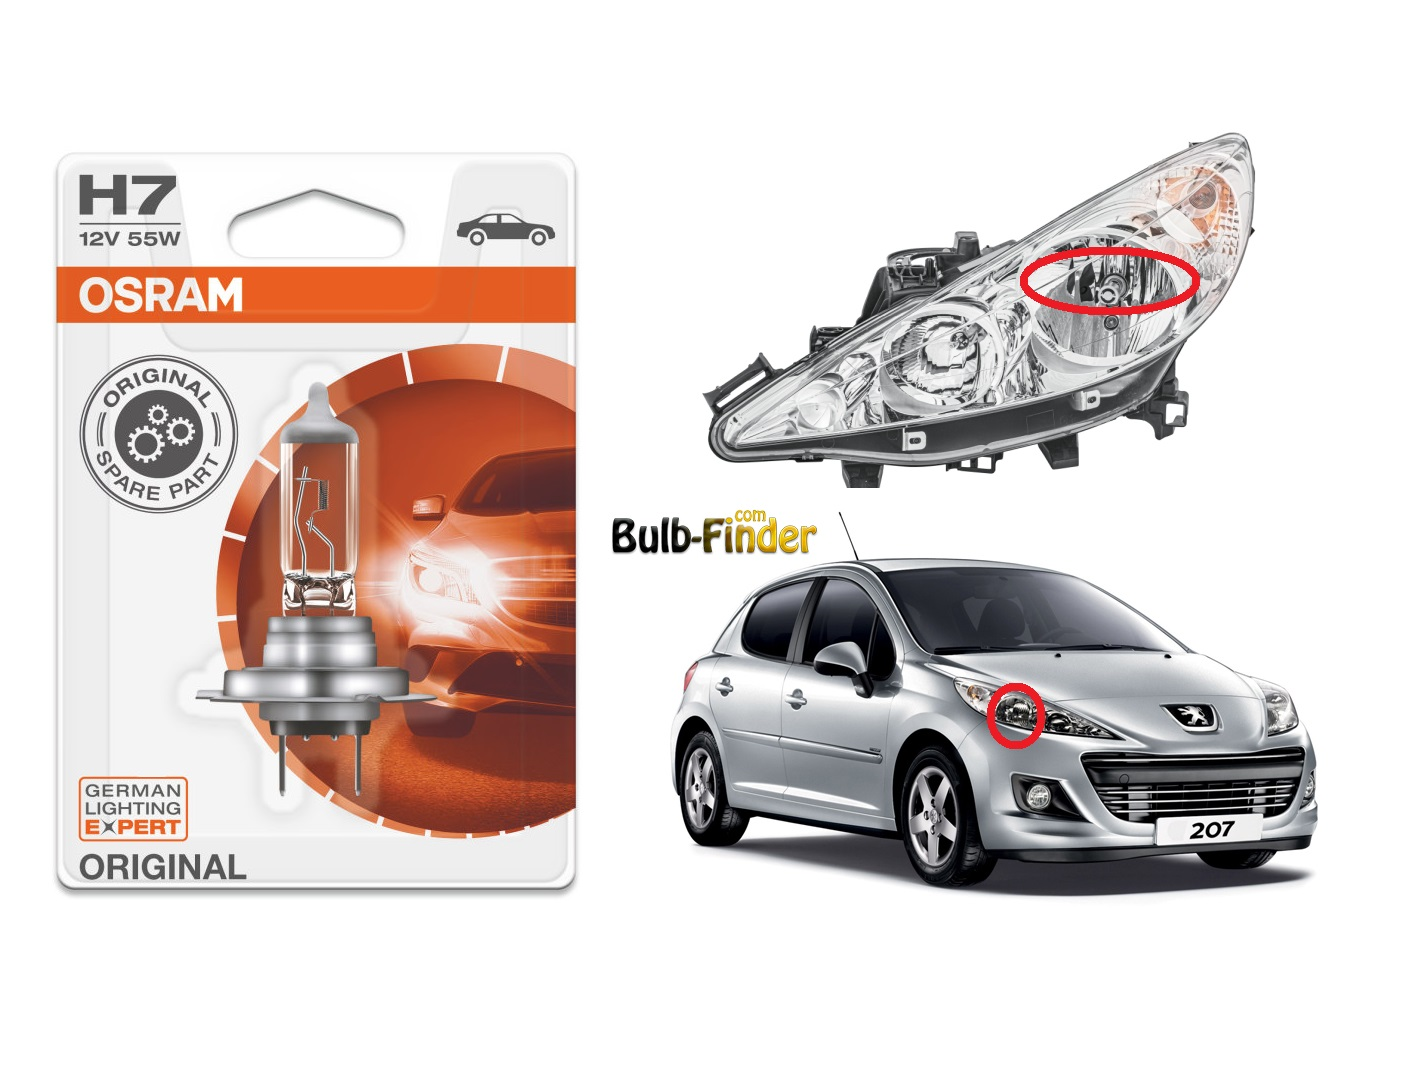 Peugeot 207 bulbs specification for halogen headlamp